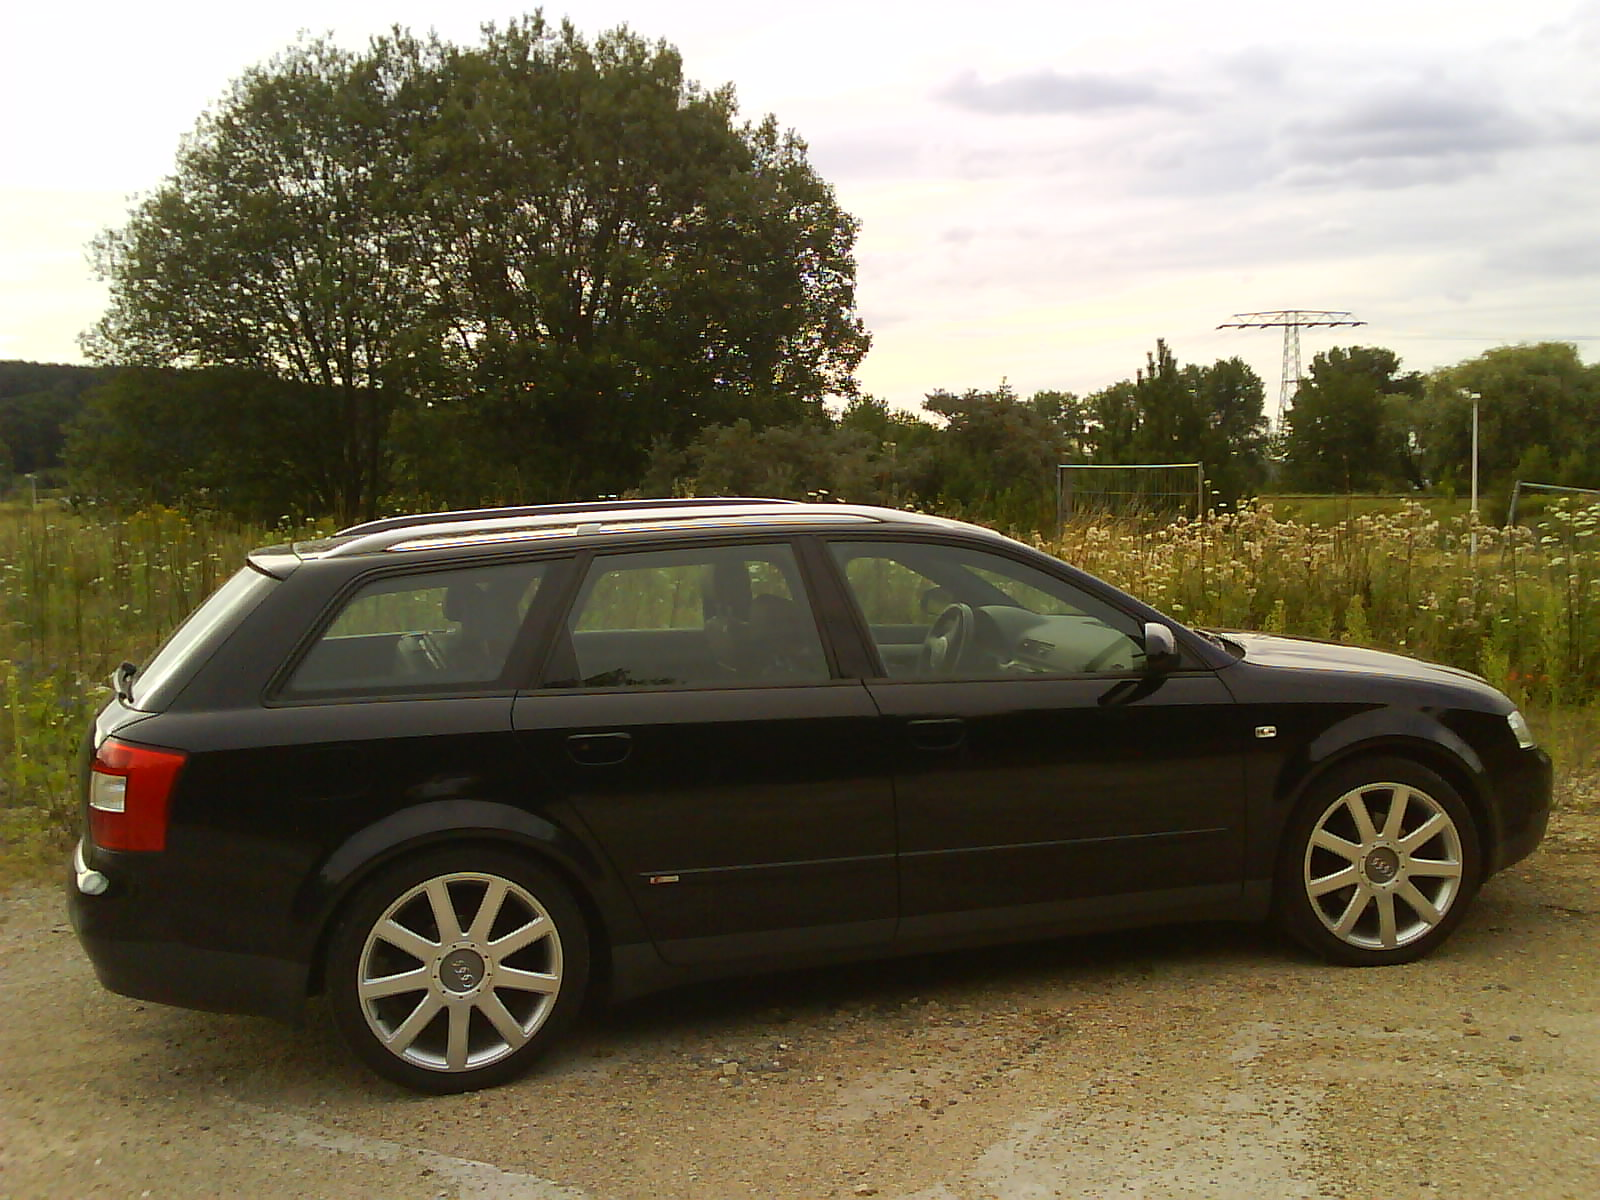 2003 audi a4 avant 8e pictures information and specs. Black Bedroom Furniture Sets. Home Design Ideas